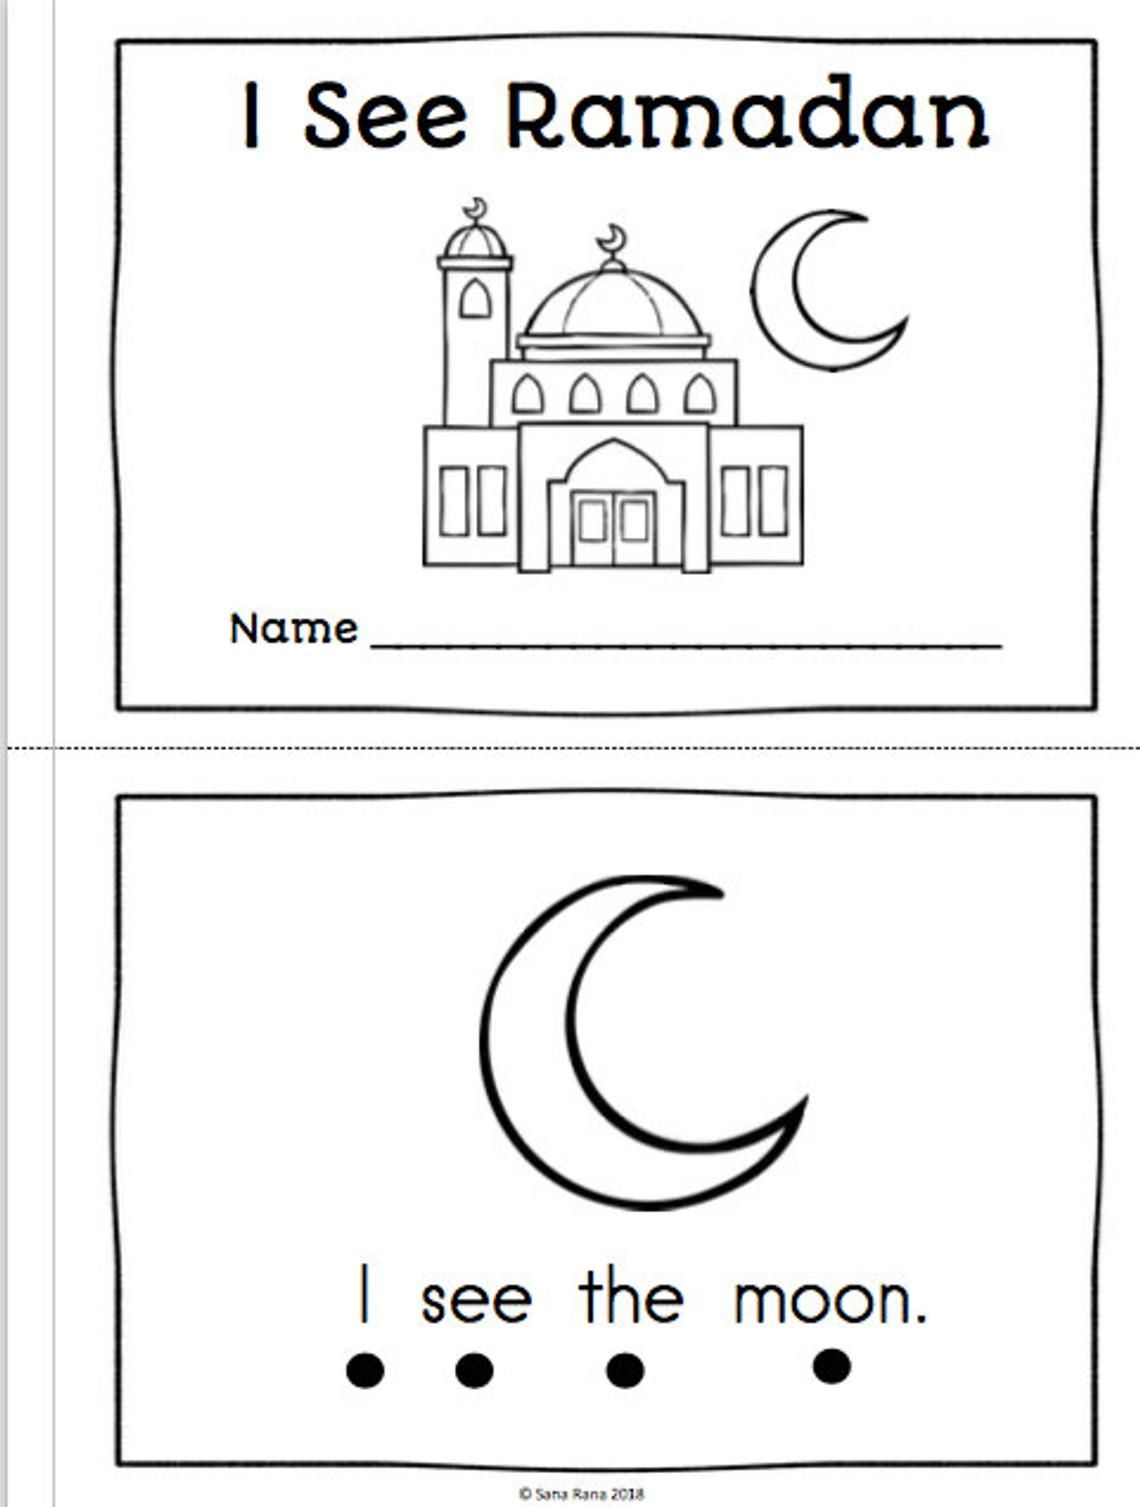 Ramadan Activity Pack Worksheet Printable Download